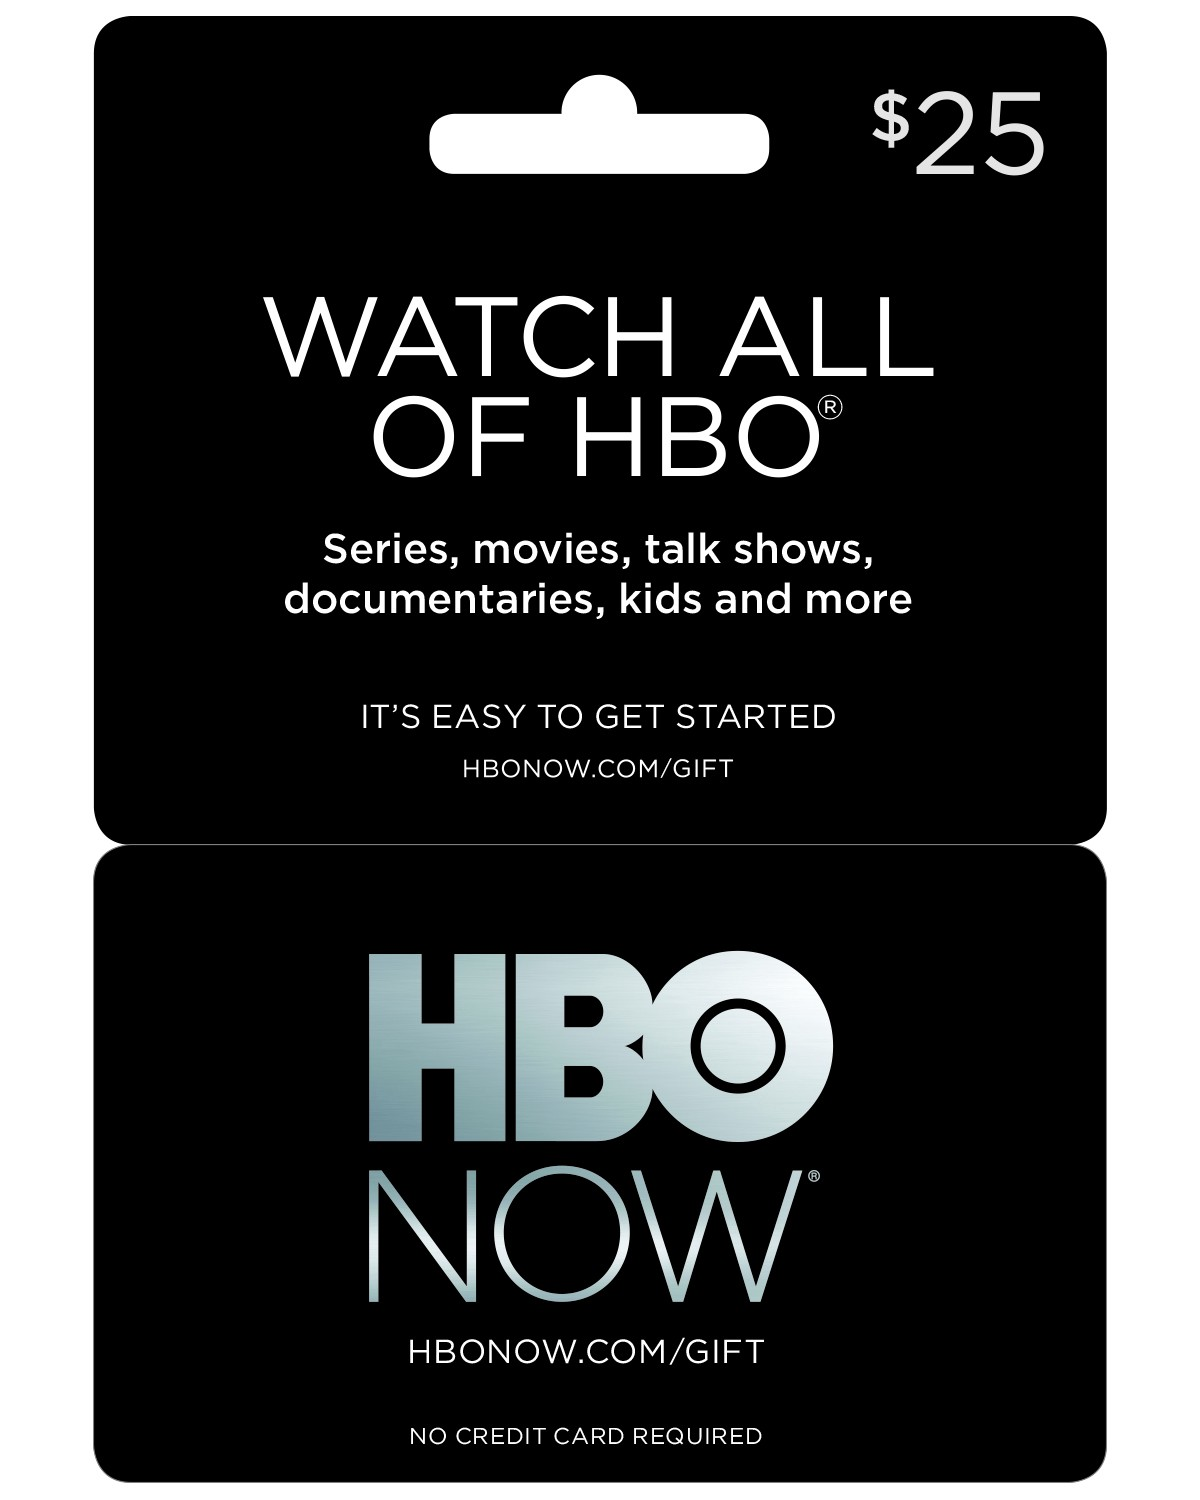 HBO NOW GIFT CARDS AVAILABLE TODAY – HBO & Cinemax PR – Medium